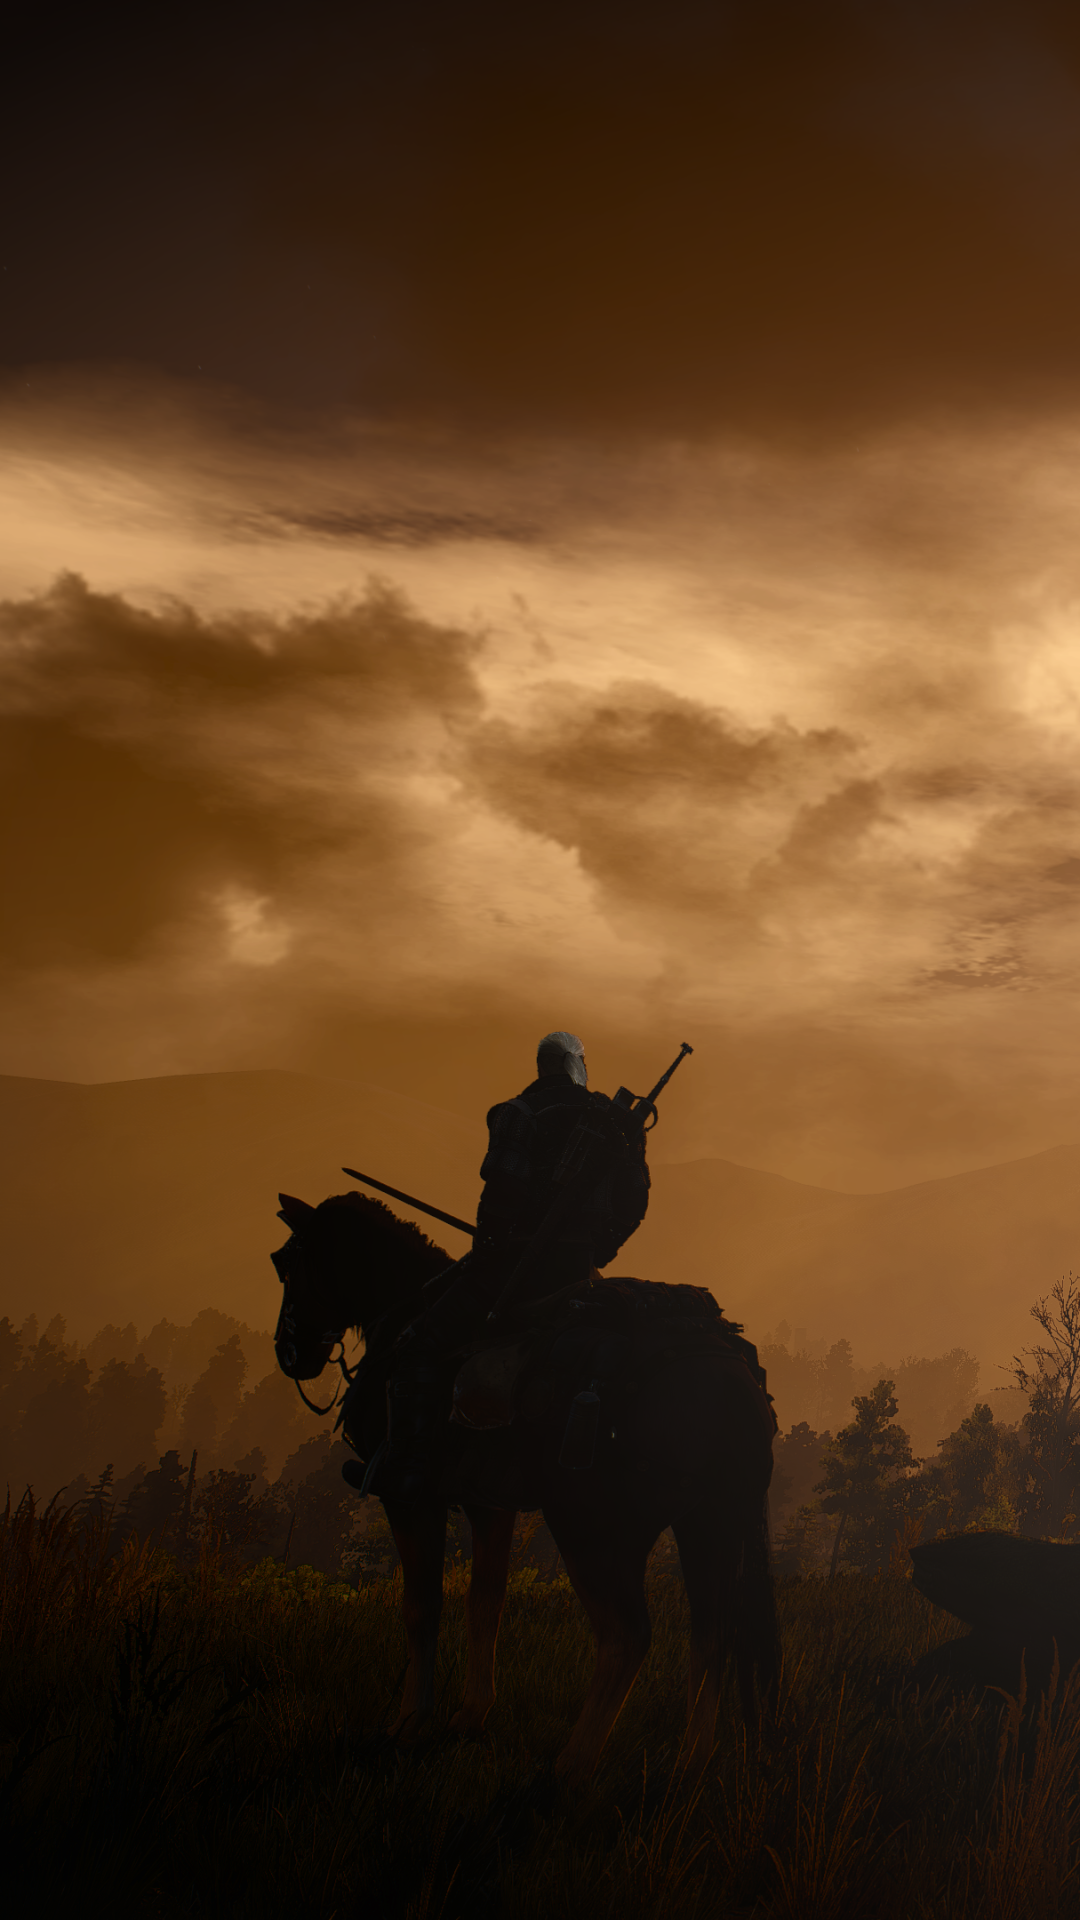 Download-this-iPhone-Plus-Video-Game-The-Witcher-Wild-Hunt-1080x1920-for-all-your-wallpaper-wpc9004447